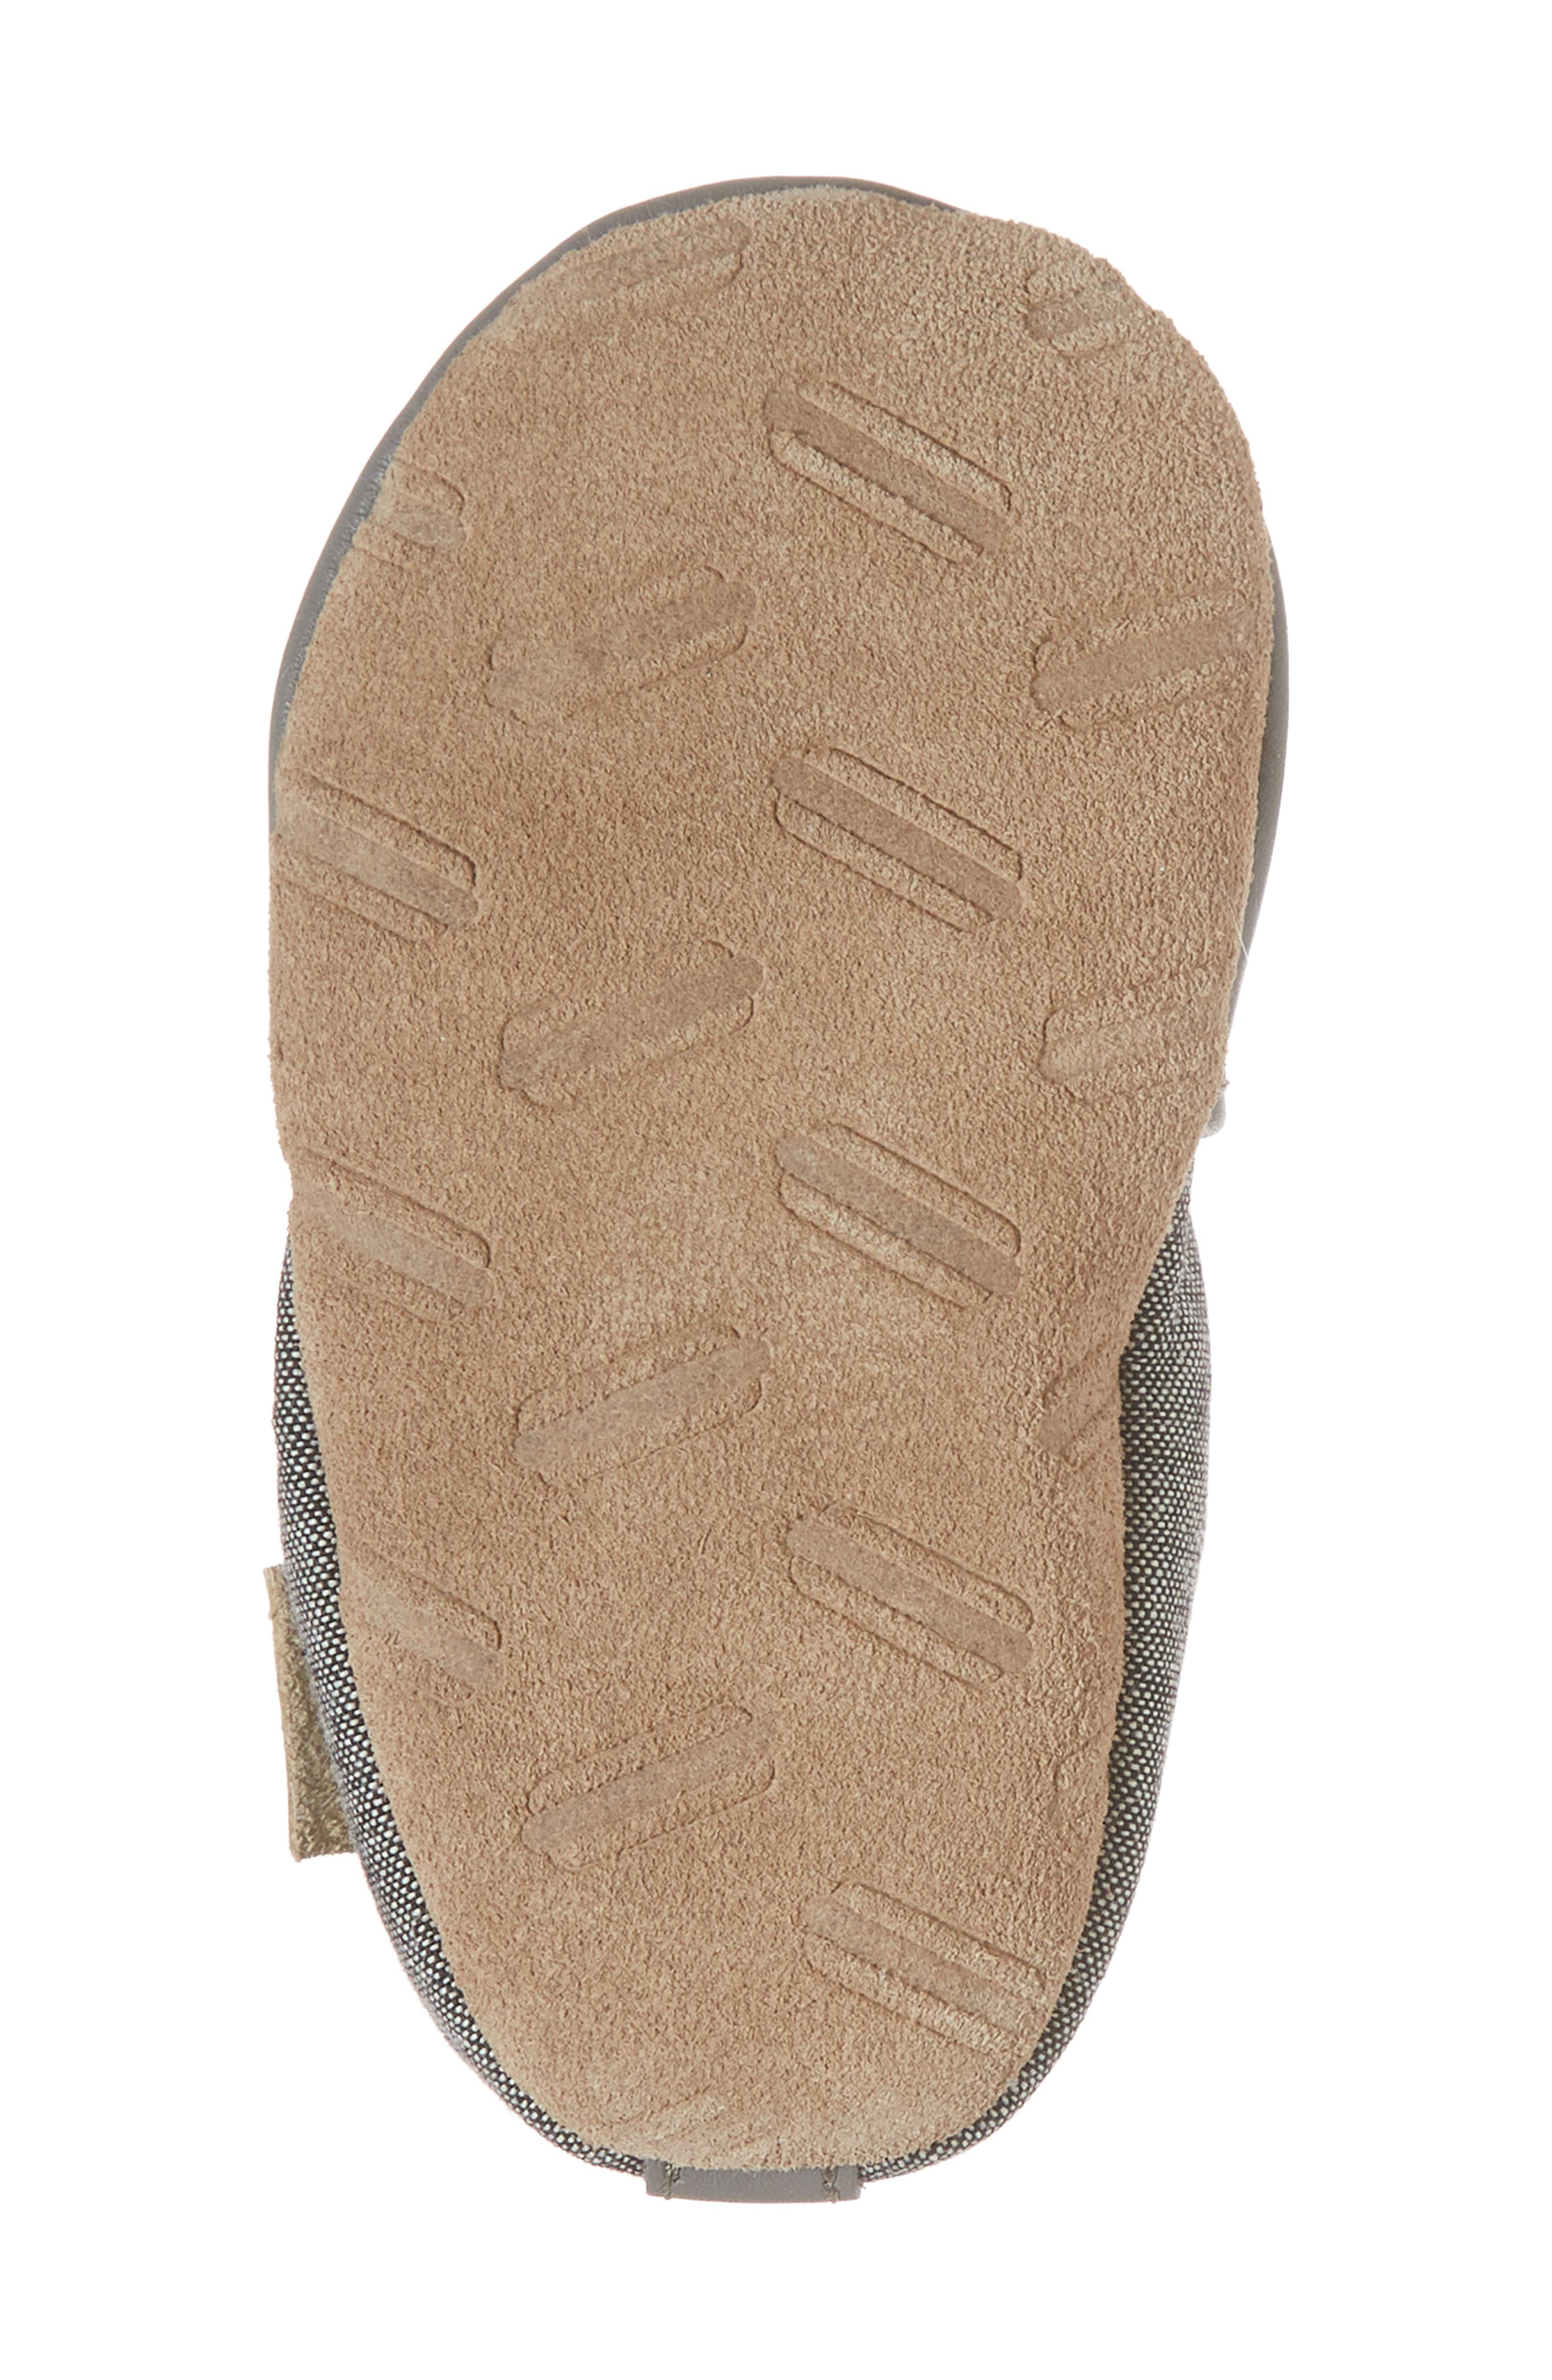 City Life Moccasin Crib Shoe,                             Alternate thumbnail 6, color,                             020